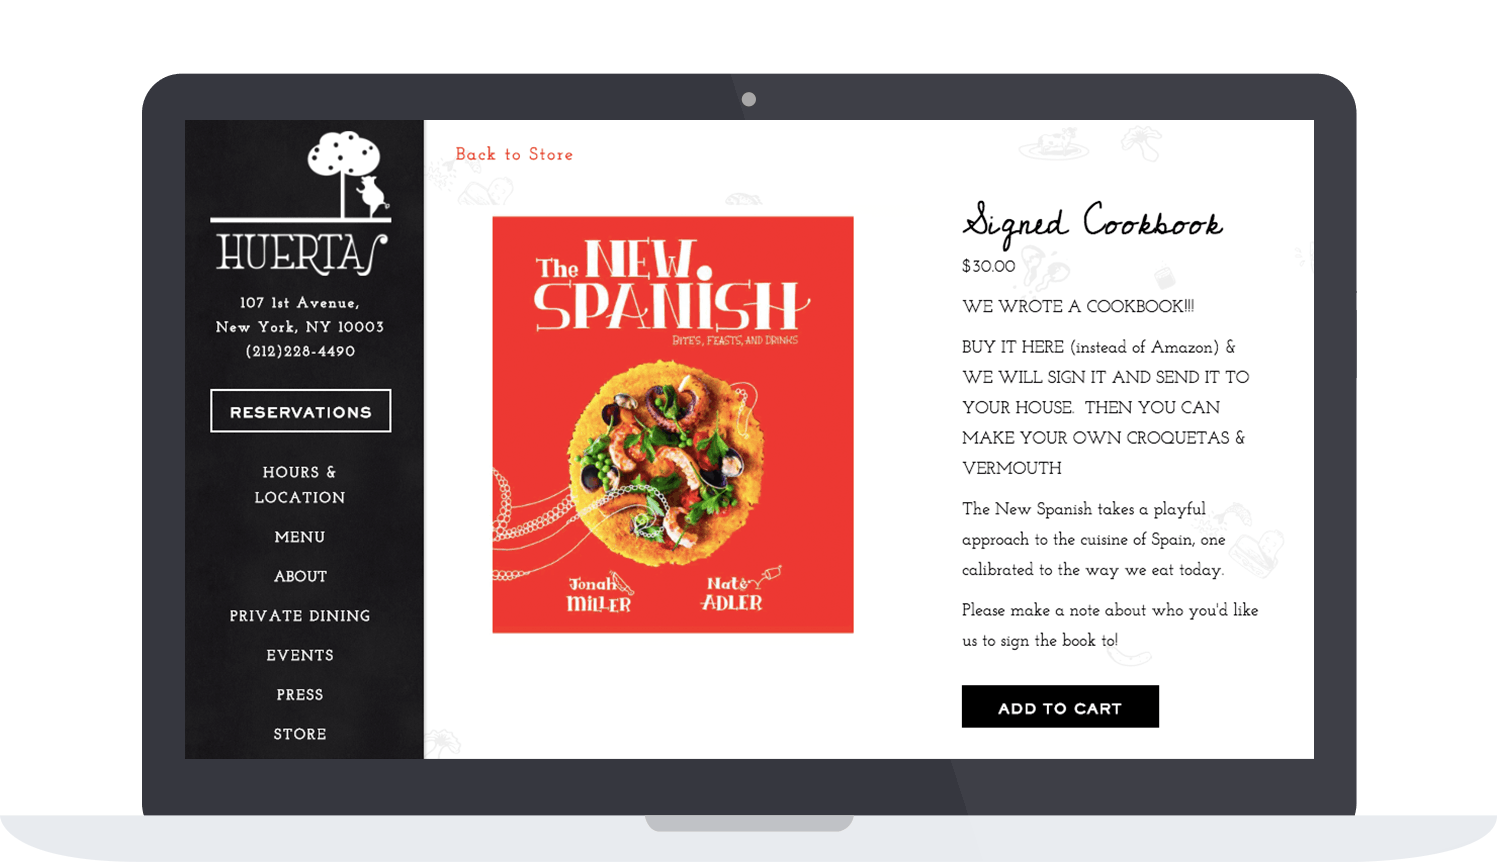 Huertas website selling their cookbook